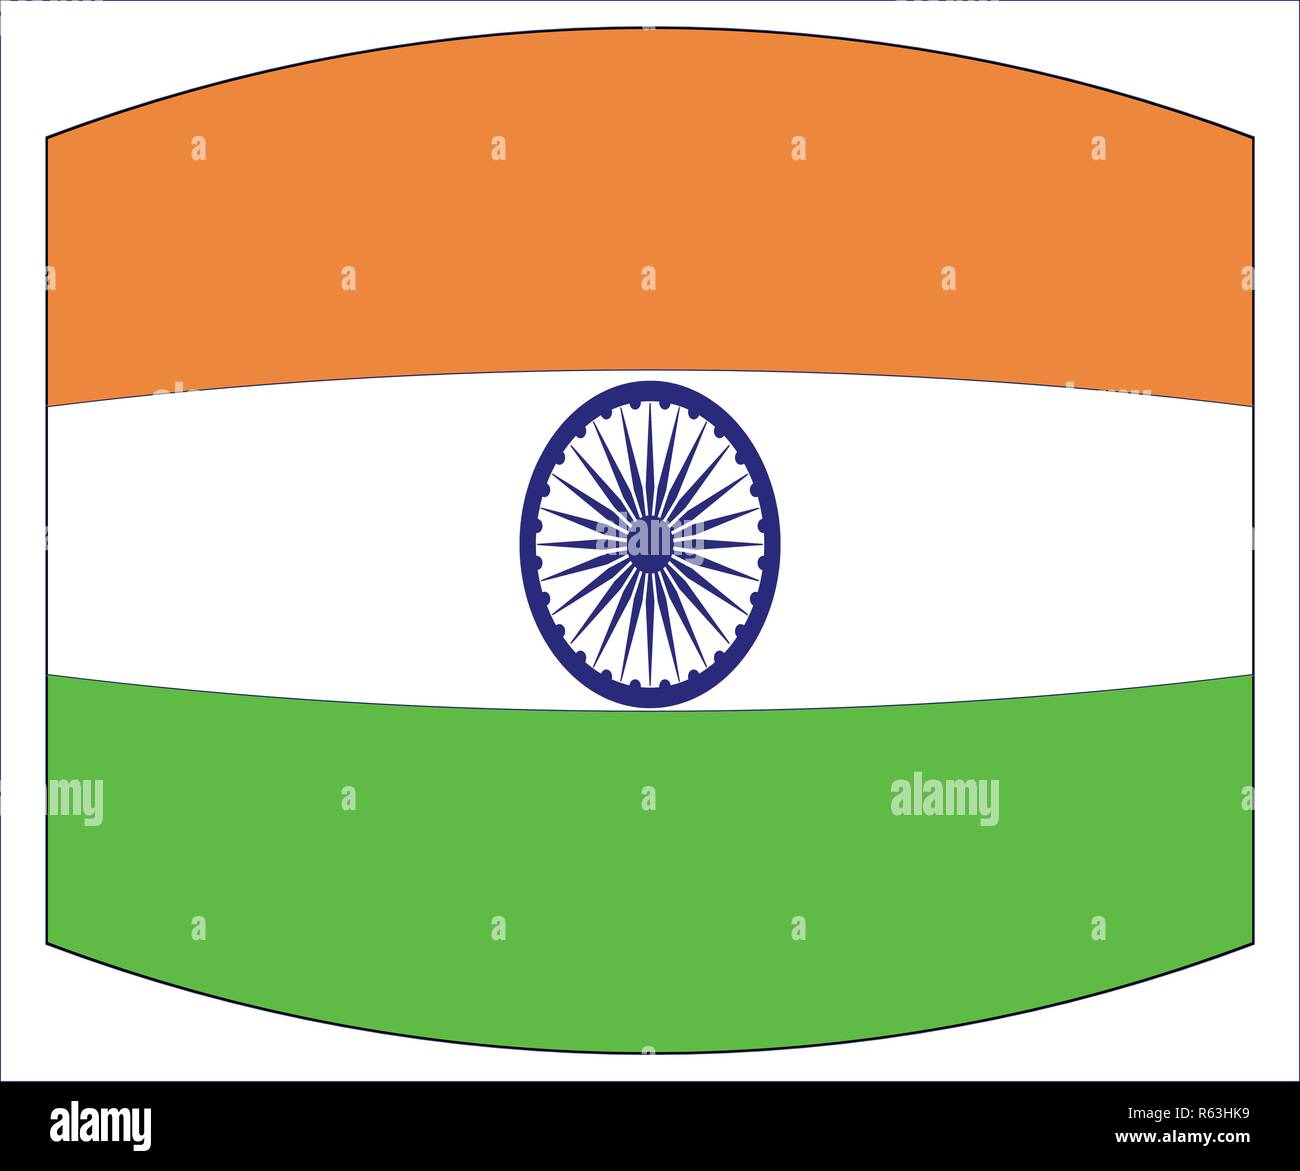 The flag of India in white green and orange with a warped out look - Stock Image